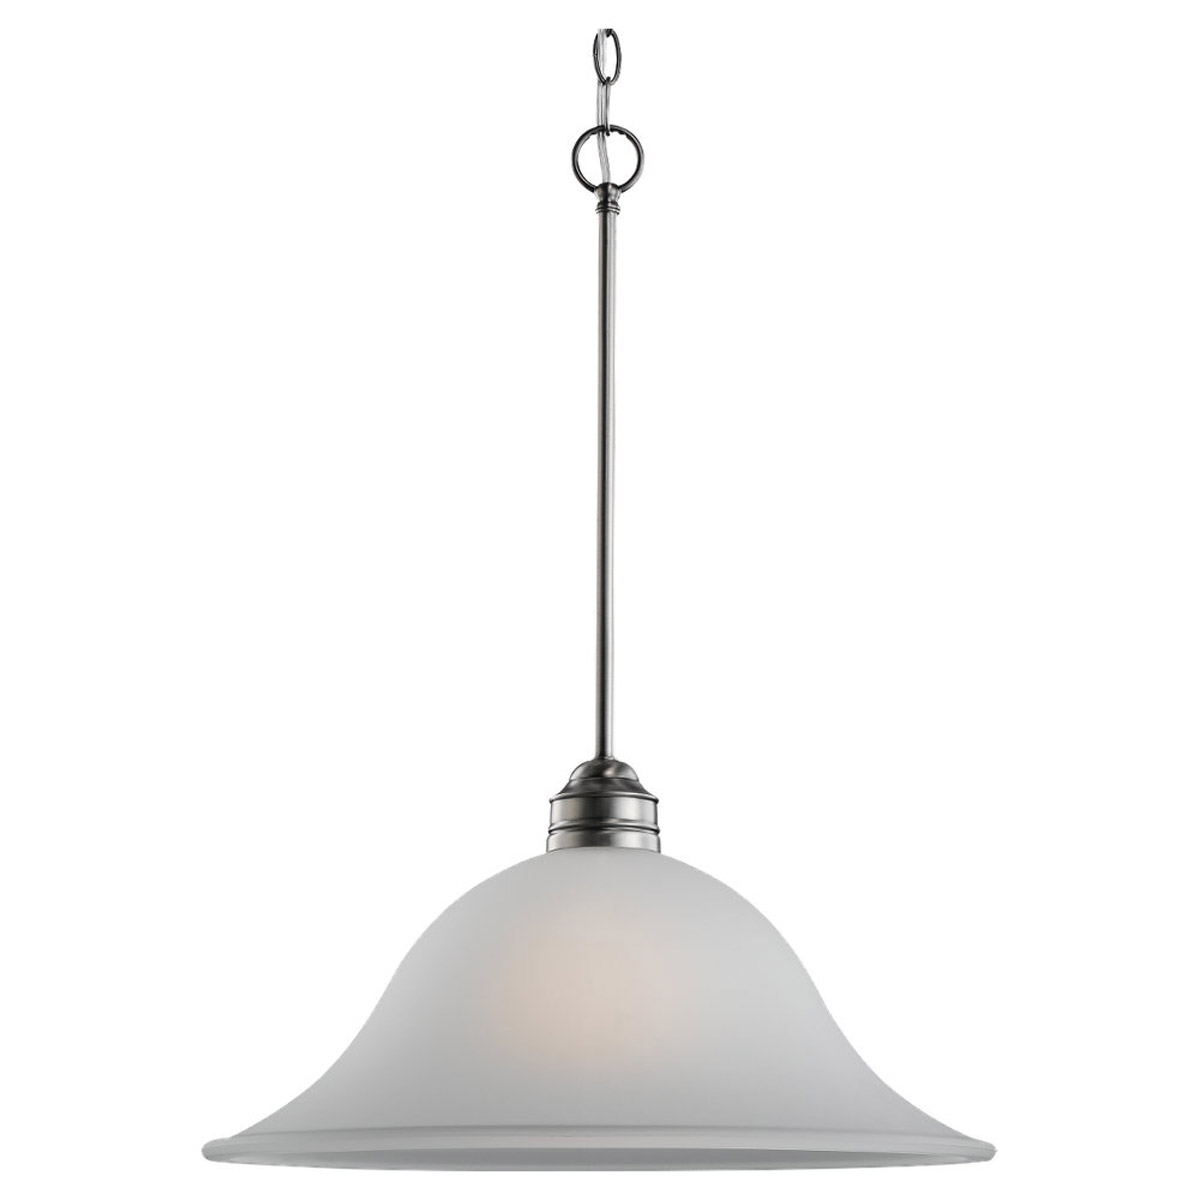 Sea Gull 65850-965 Gladstone 1 Light 18 inch Antique Brushed Nickel Pendant Ceiling Light in Satin Etched Glass, Standard photo